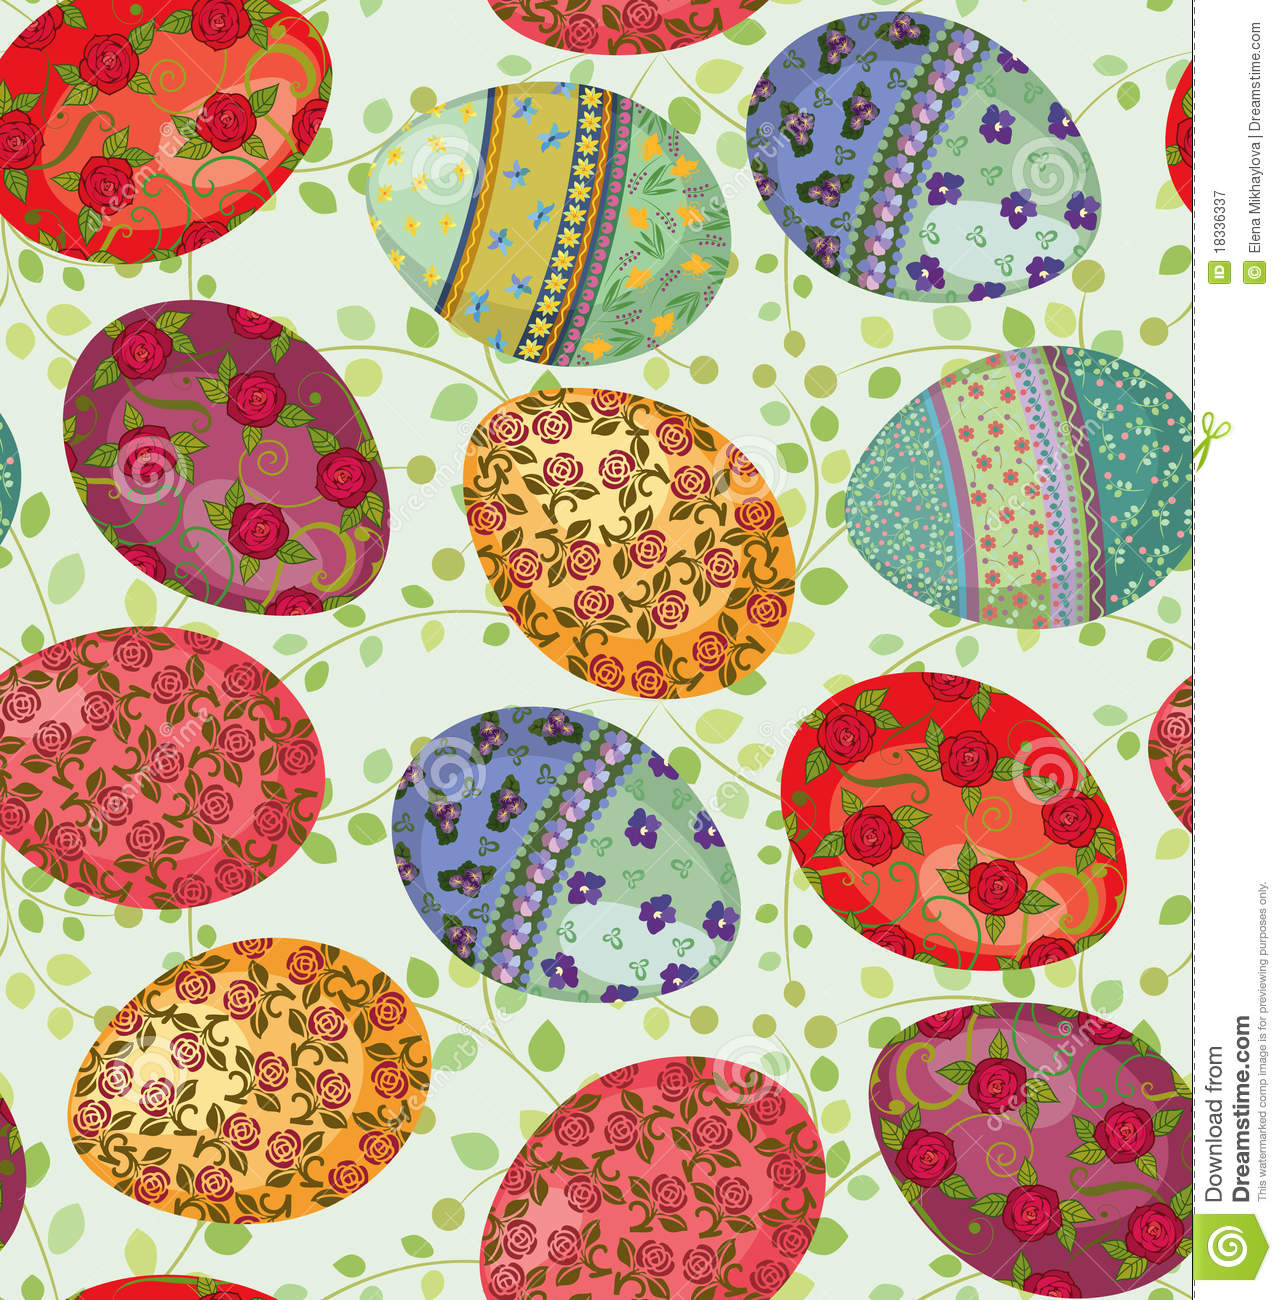 Easter Eggs Pattern Royalty Free Stock Photography - Image: 18336337